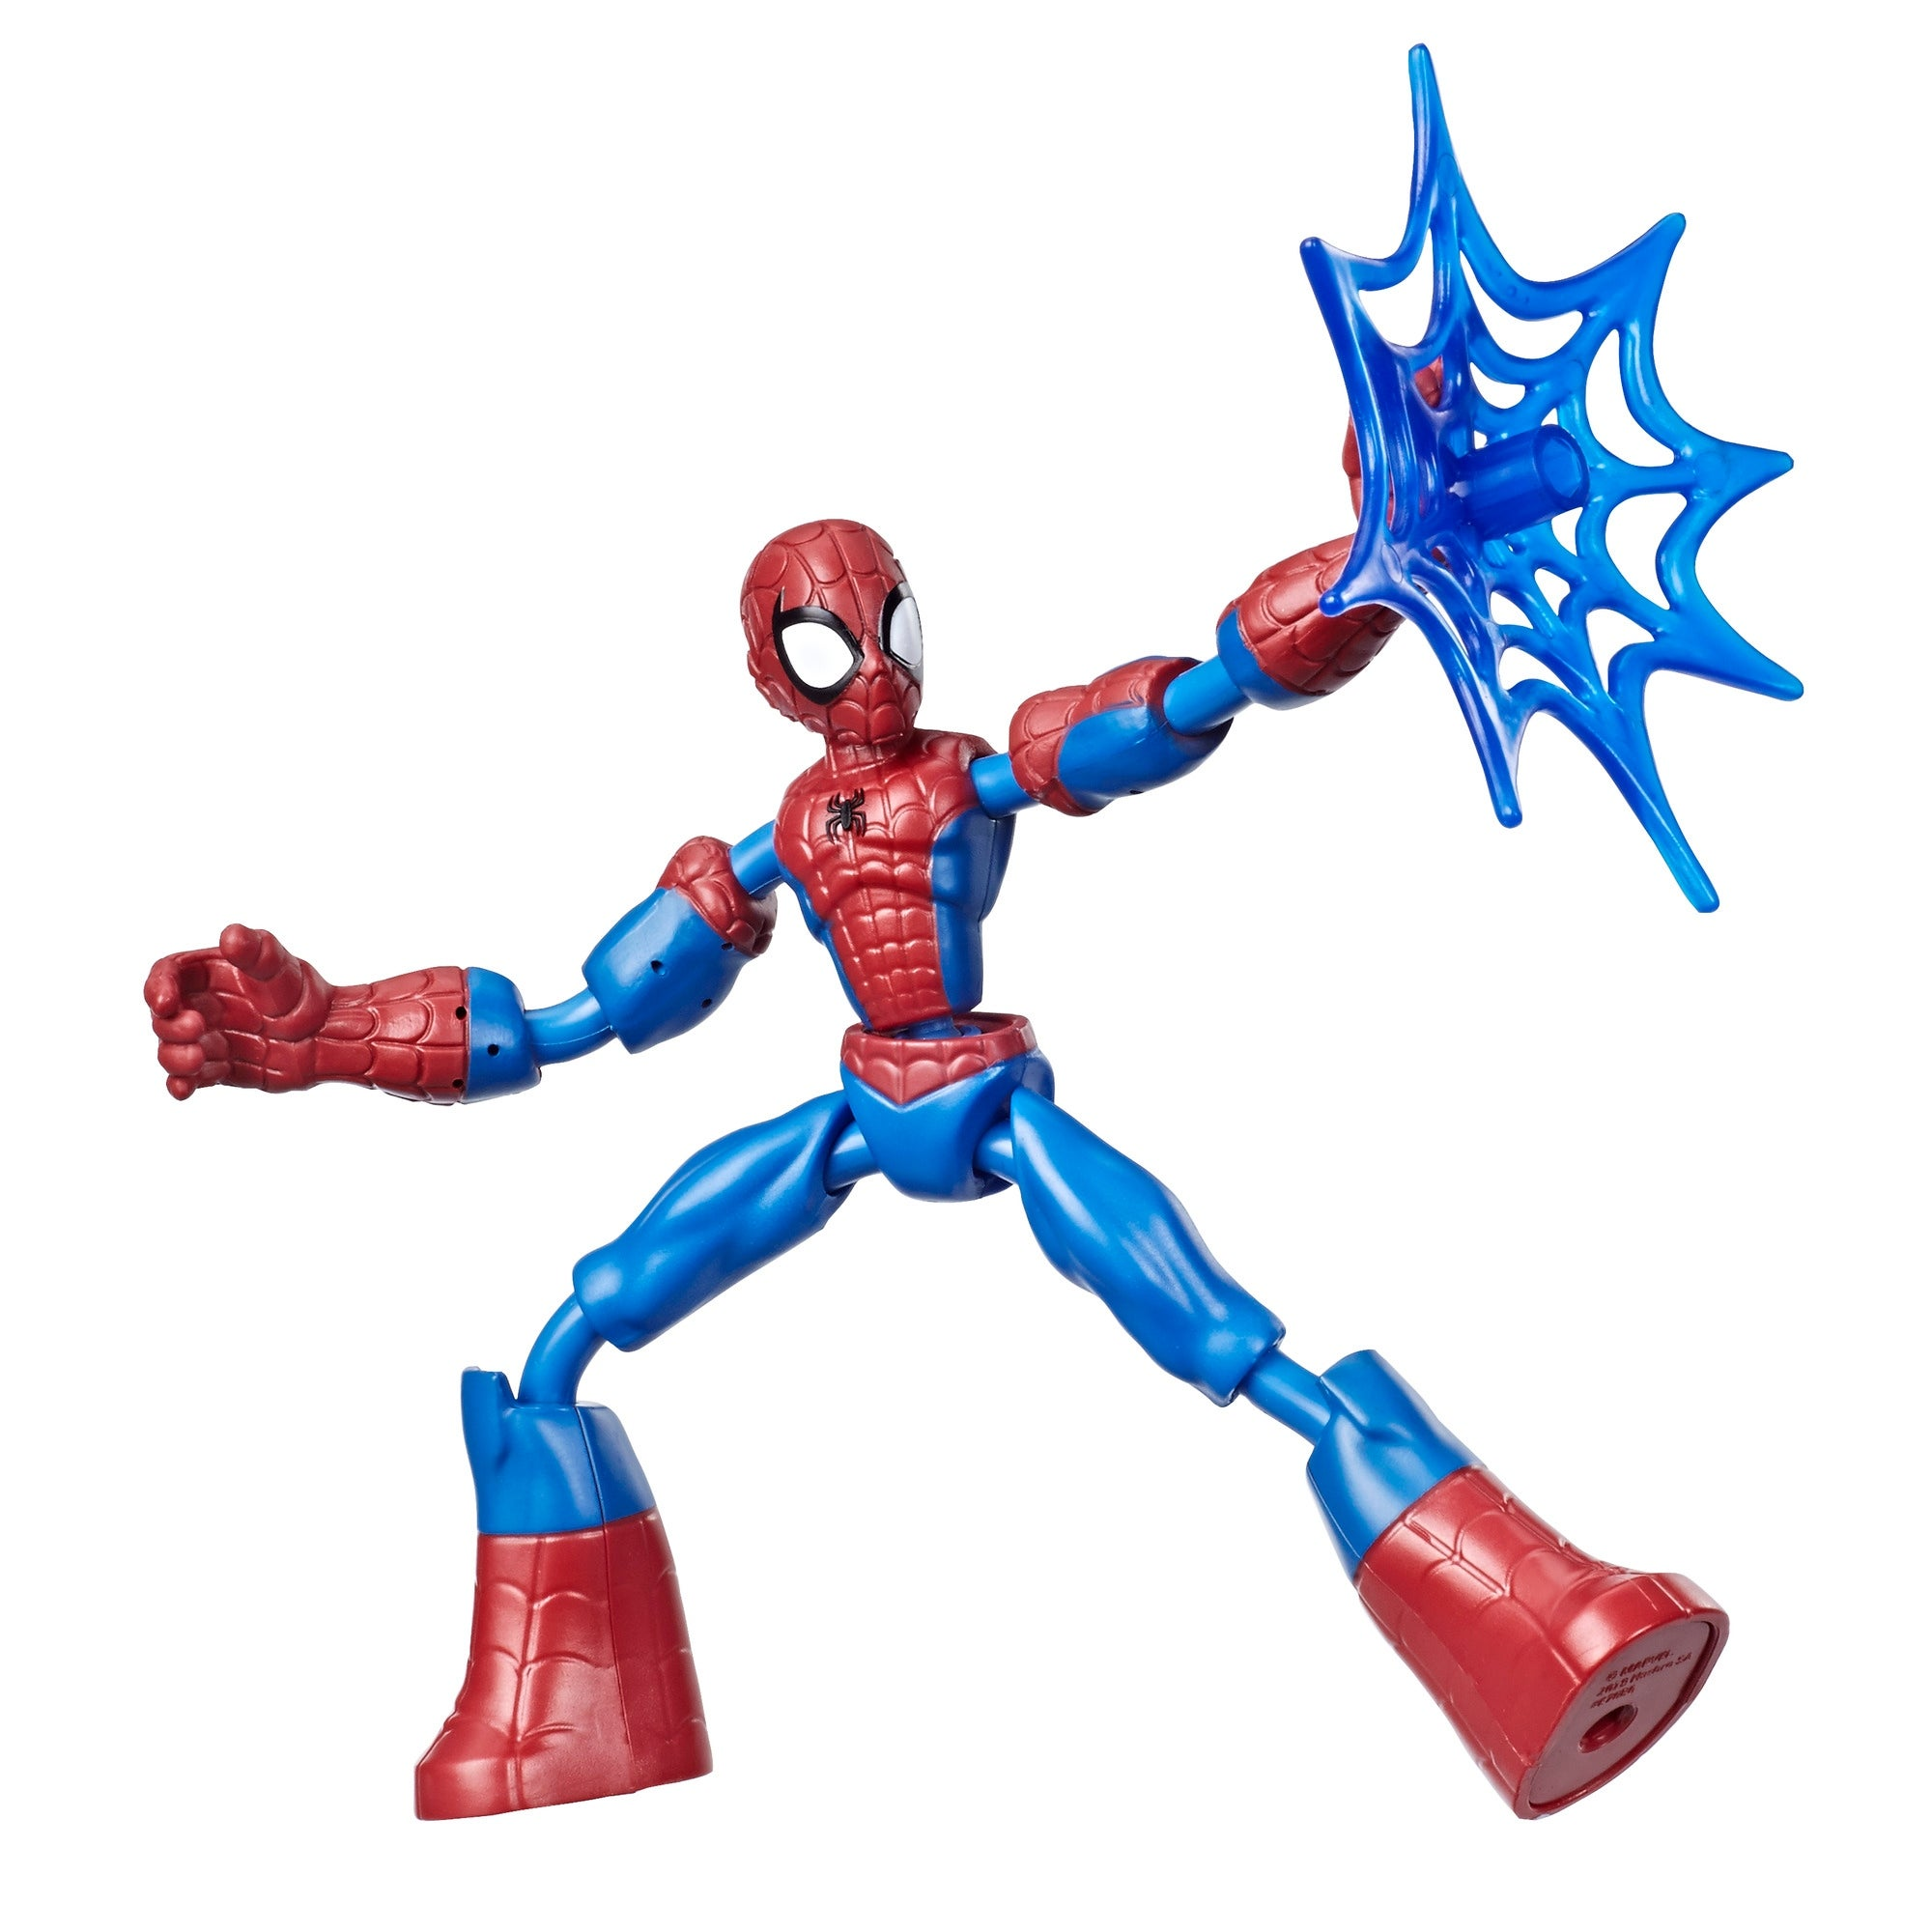 Marvel Spiderman Titan Hero Series 6 Figure Limited Edition Collectors Gift Pack